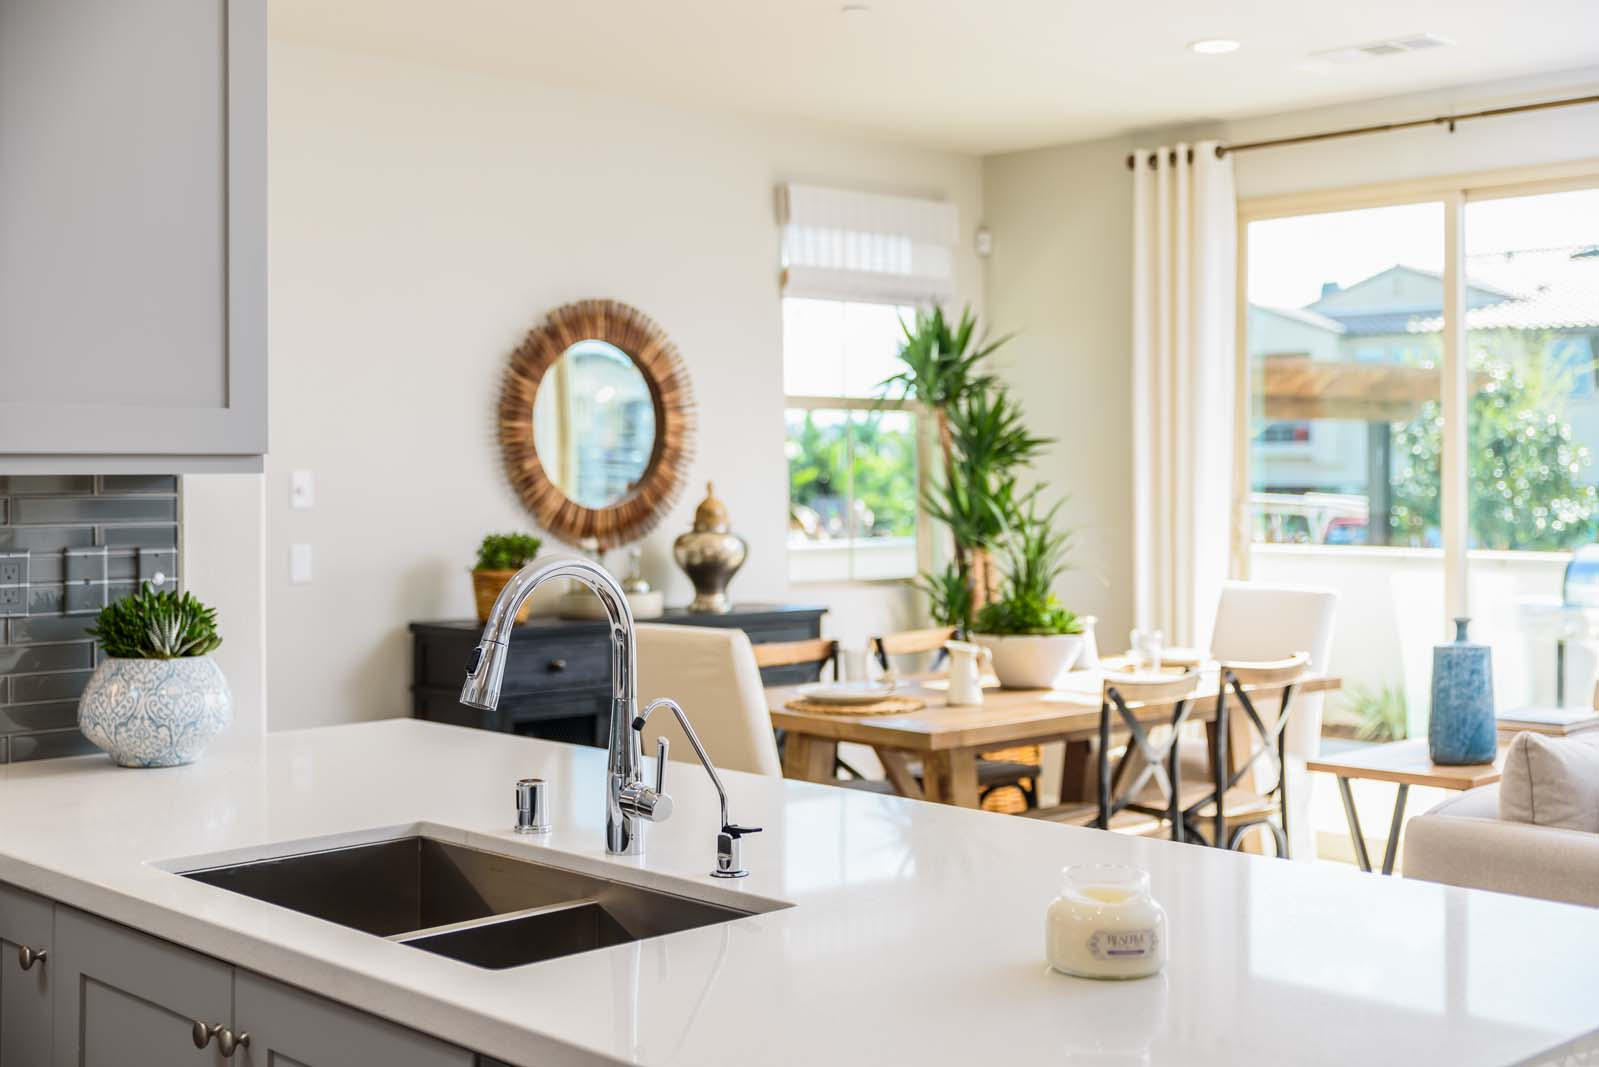 Kitchen Sink Residence 3 | Flora at the Village of Escaya in Chula Vista, CA | Brookfield Residential